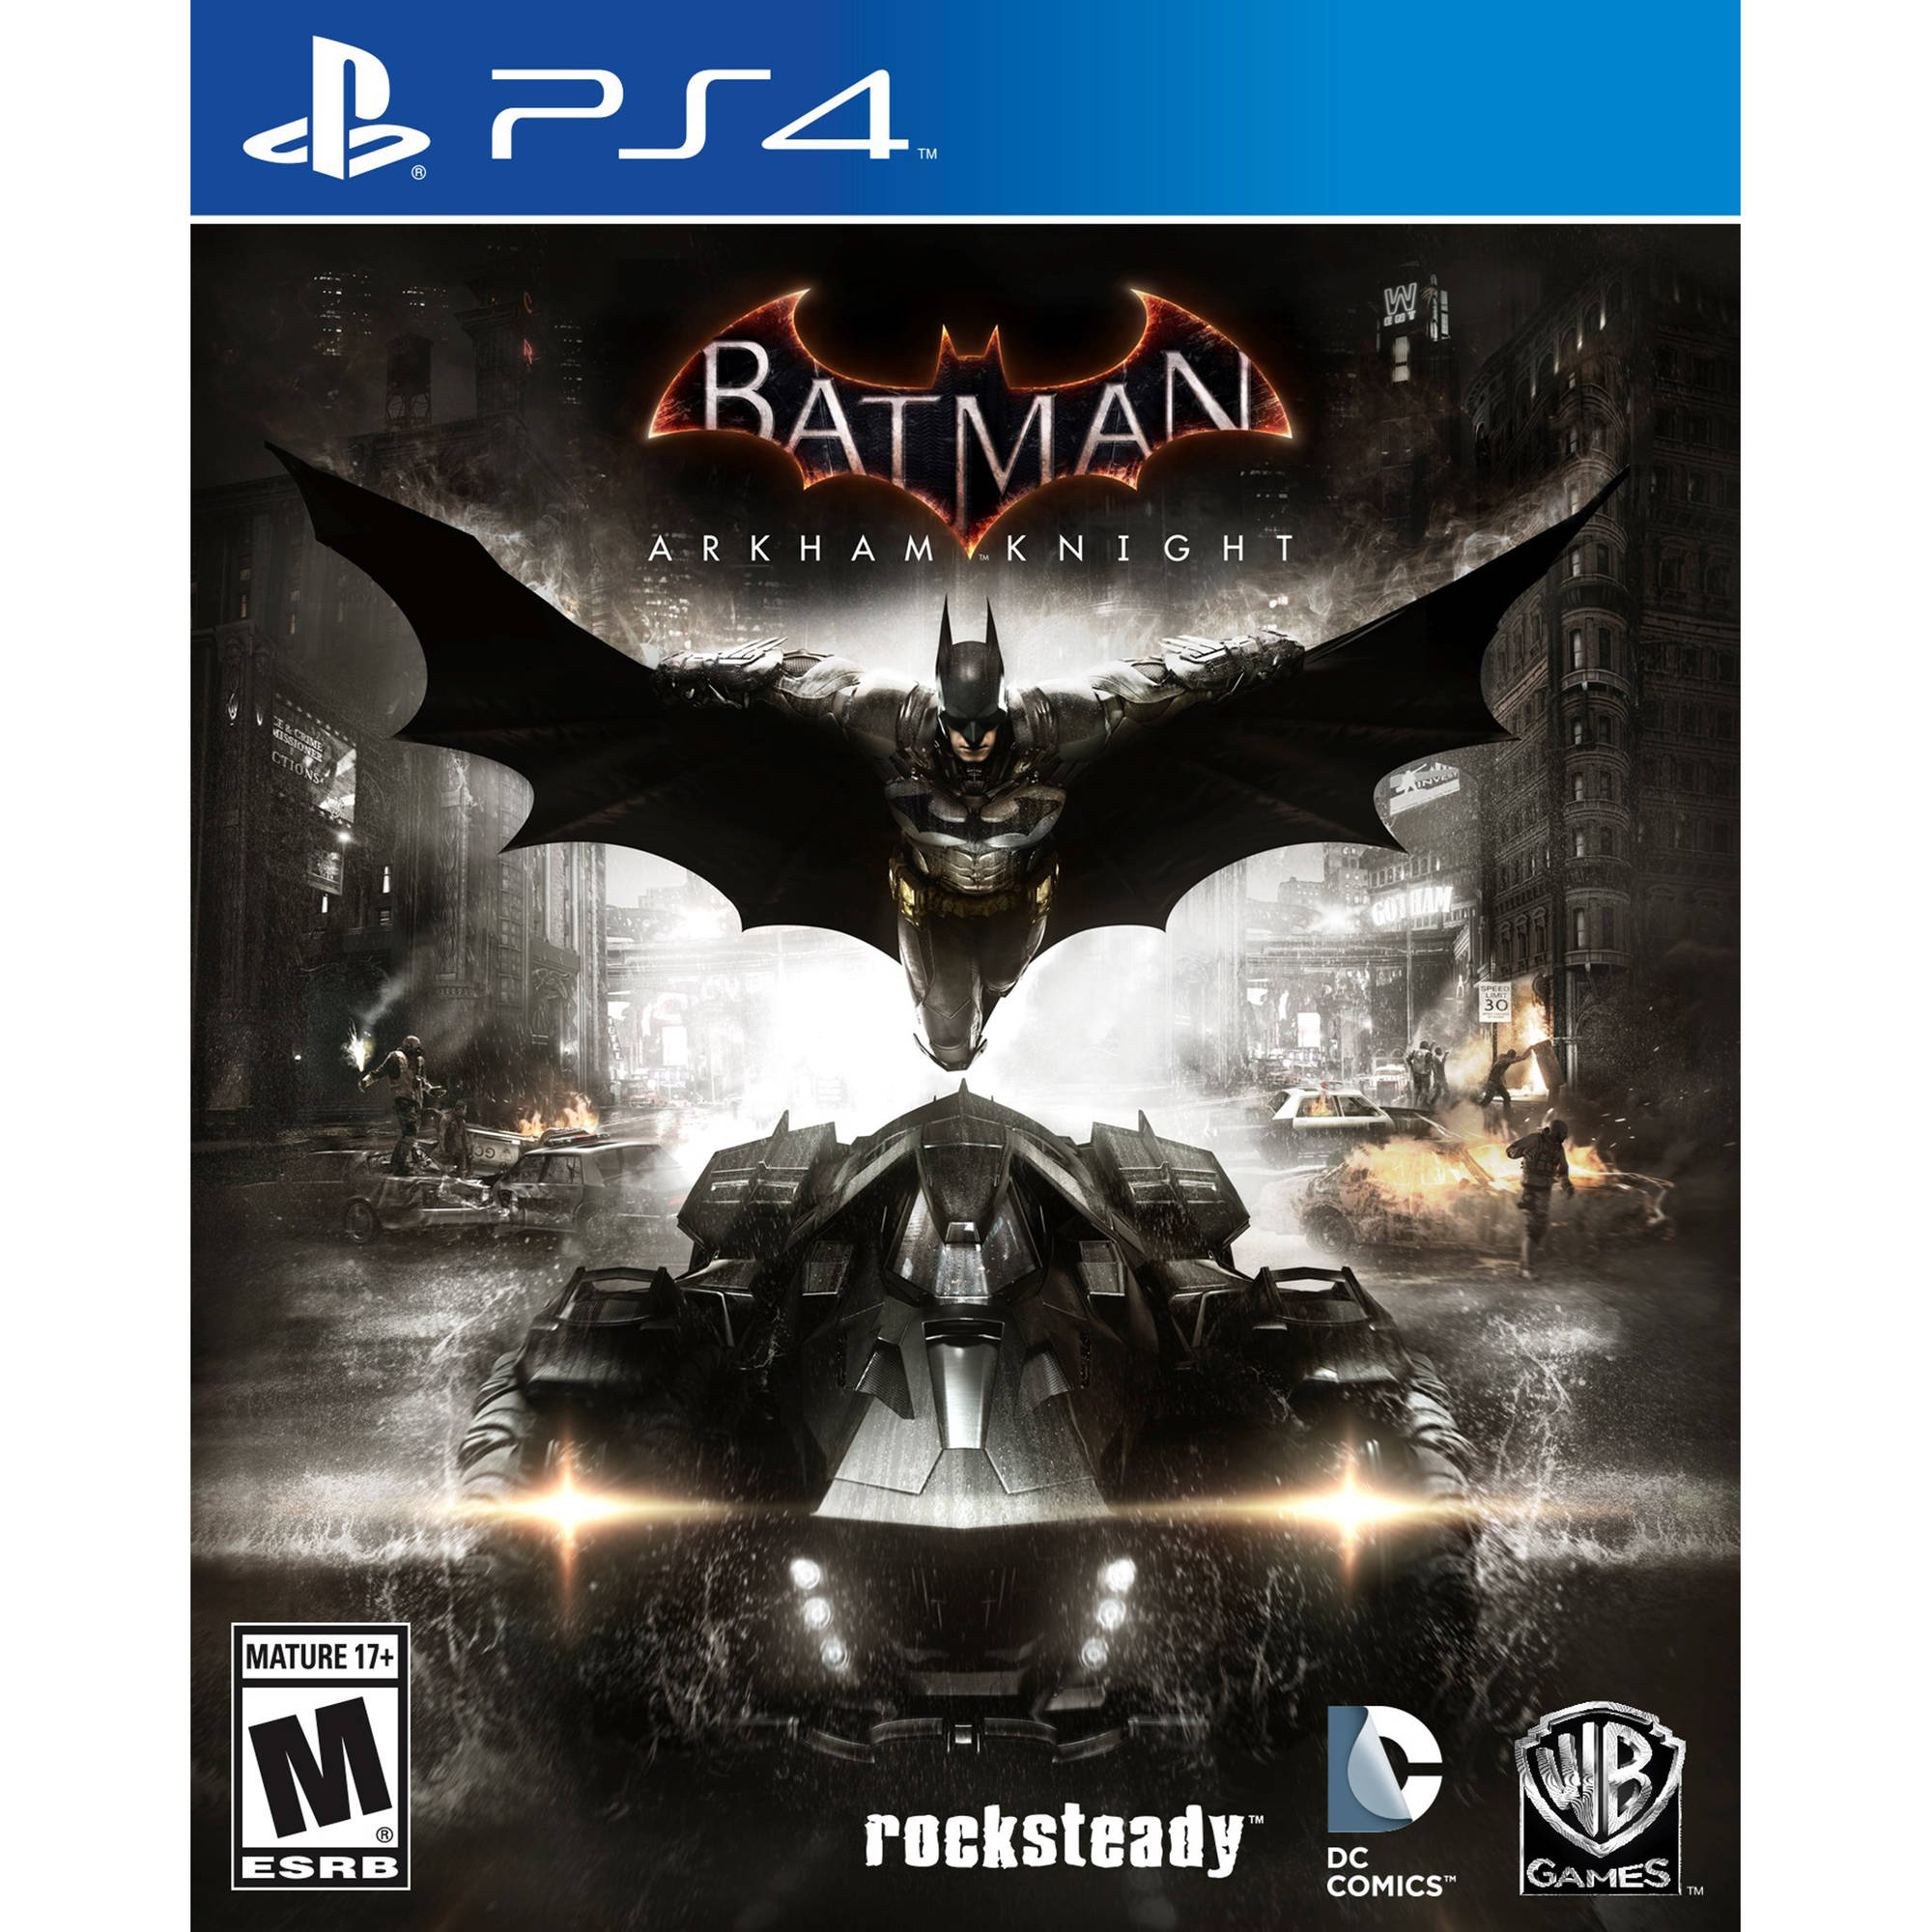 Batman: Arkham Knight (Playstation 4) by WHV Games